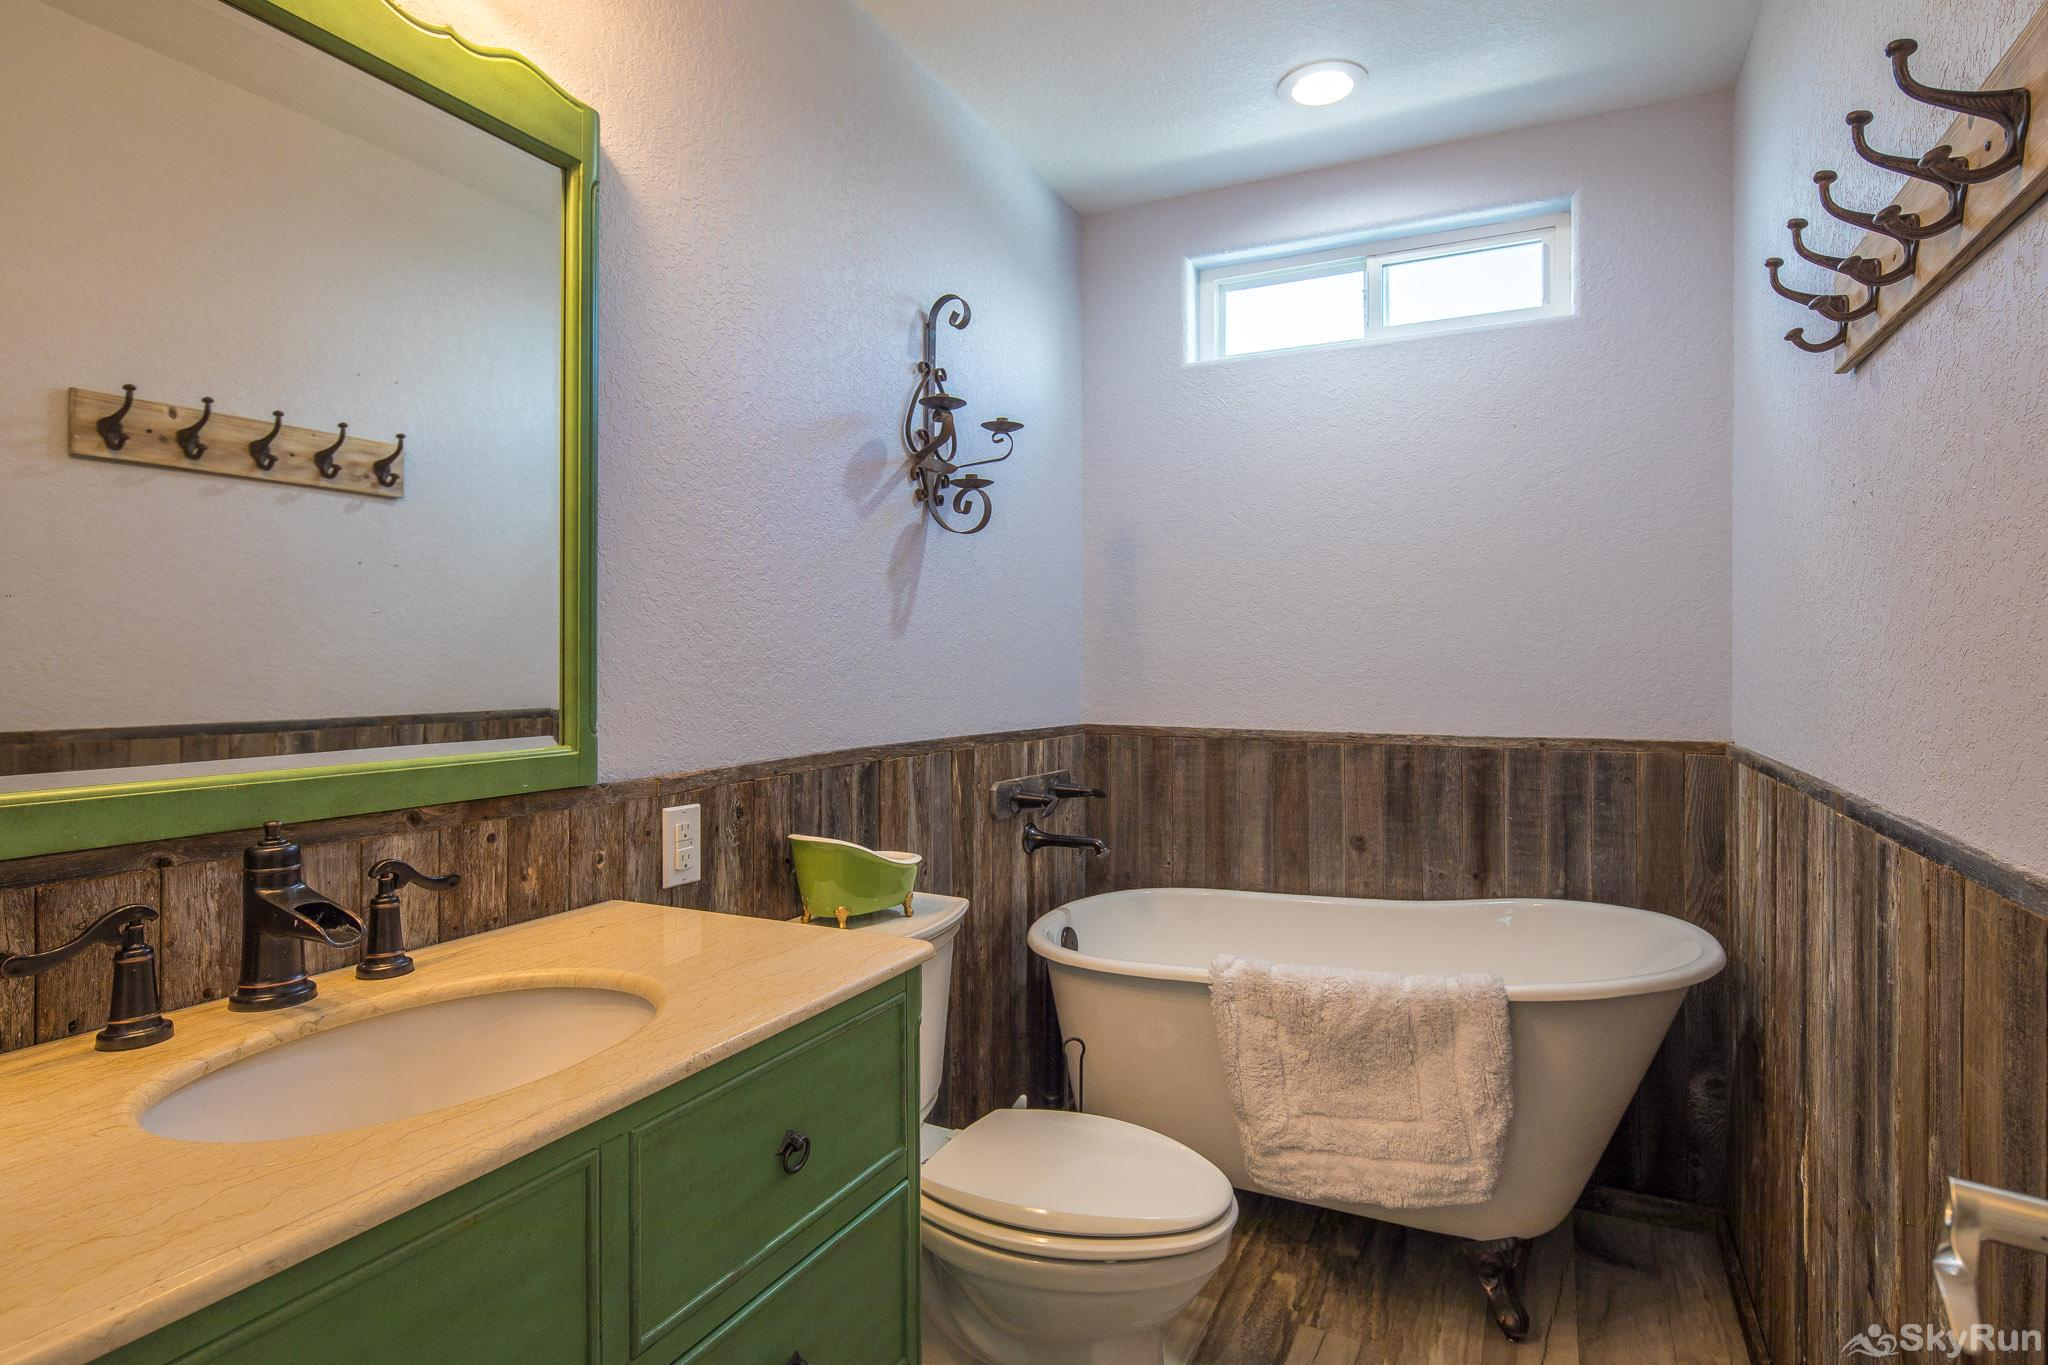 LEDGEROCK POINTE Second bathroom with clawfoot soaking tub